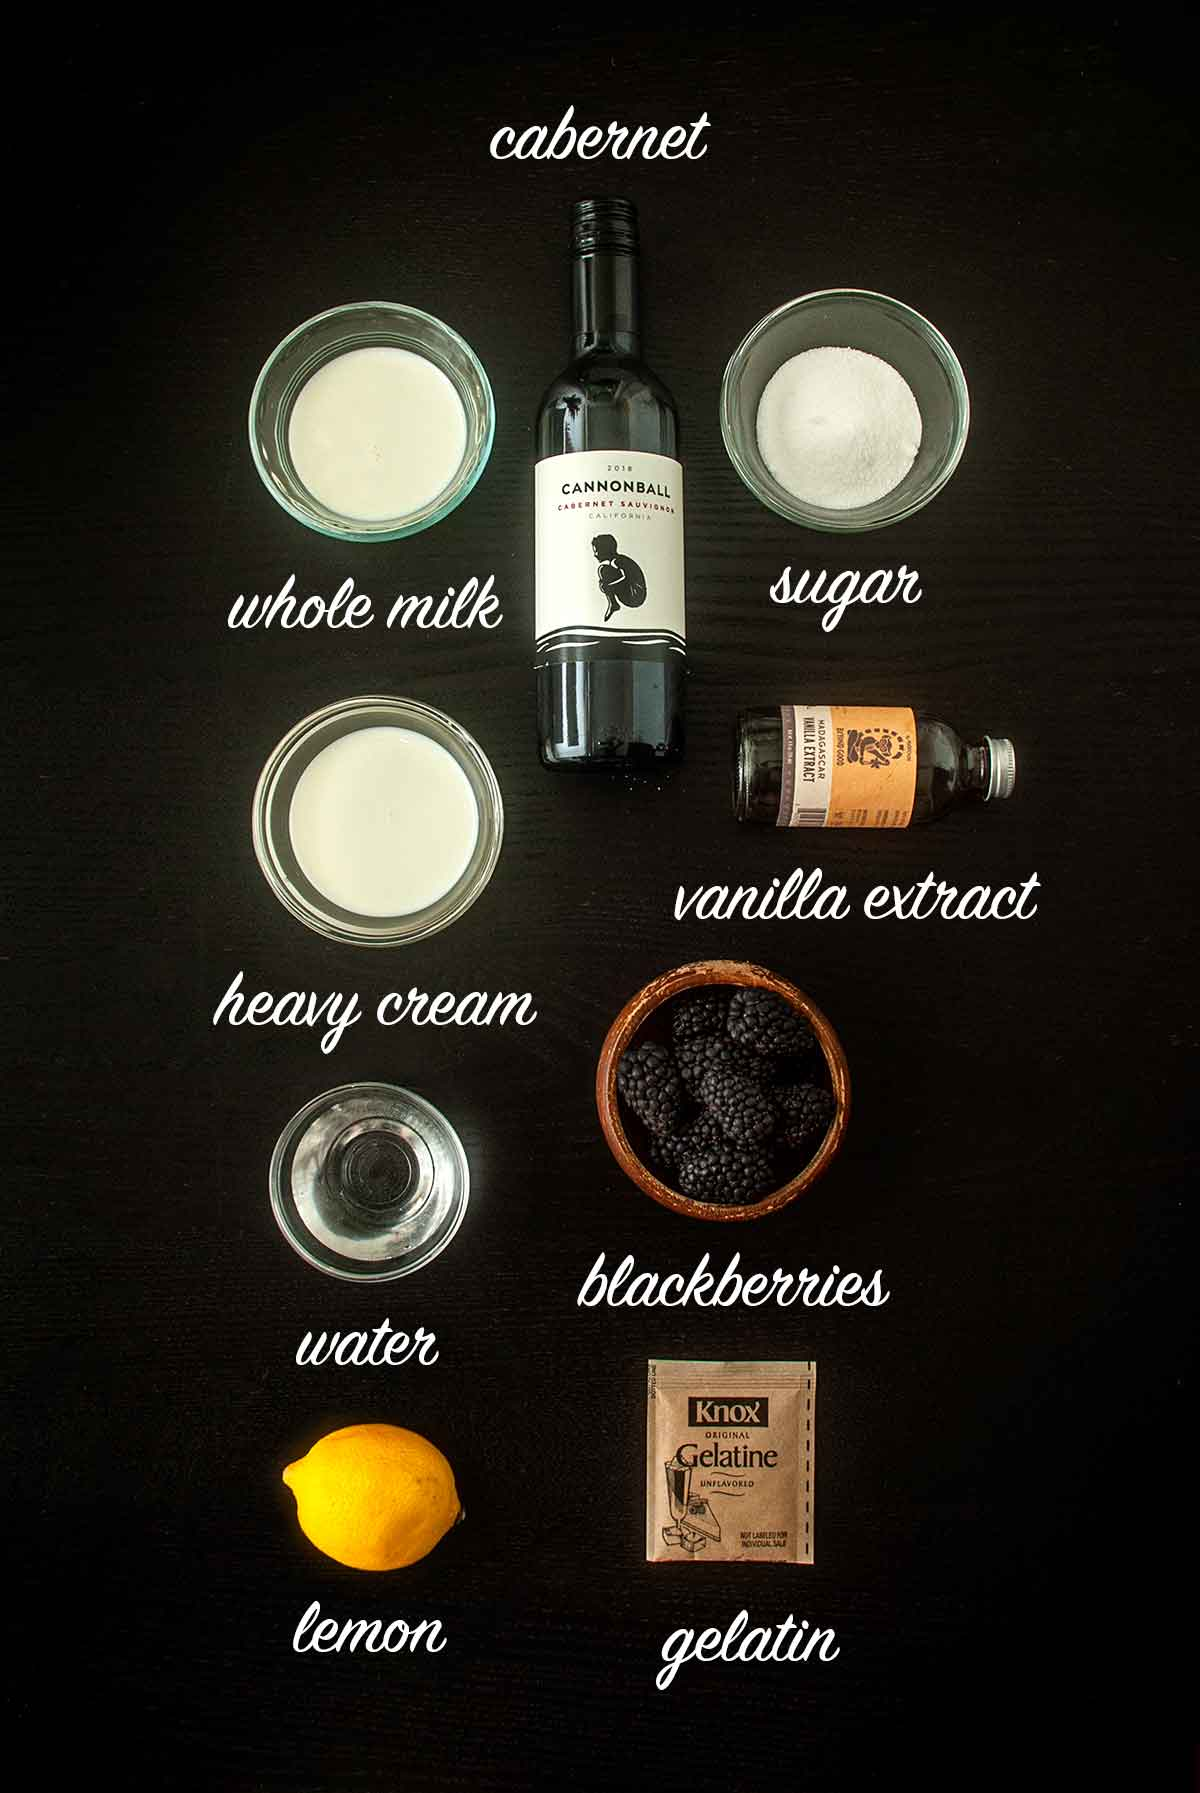 9 ingredients on a table for making panna cotta and berry sauce, with titles describing them.